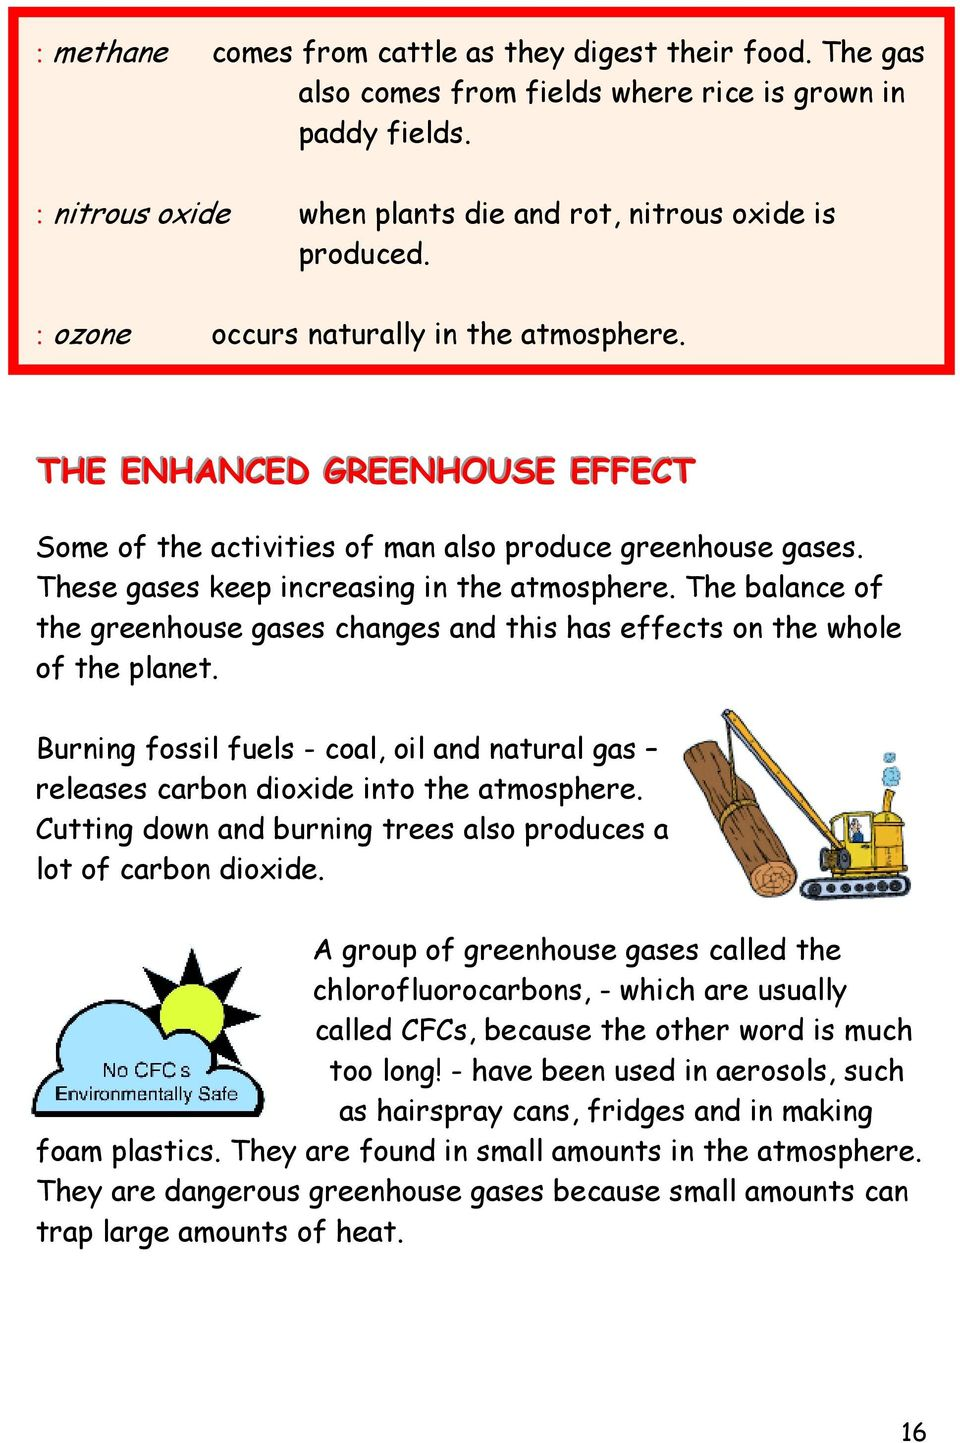 The balance of the greenhouse gases changes and this has effects on the whole of the planet. Burning fossil fuels - coal, oil and natural gas releases carbon dioxide into the atmosphere.